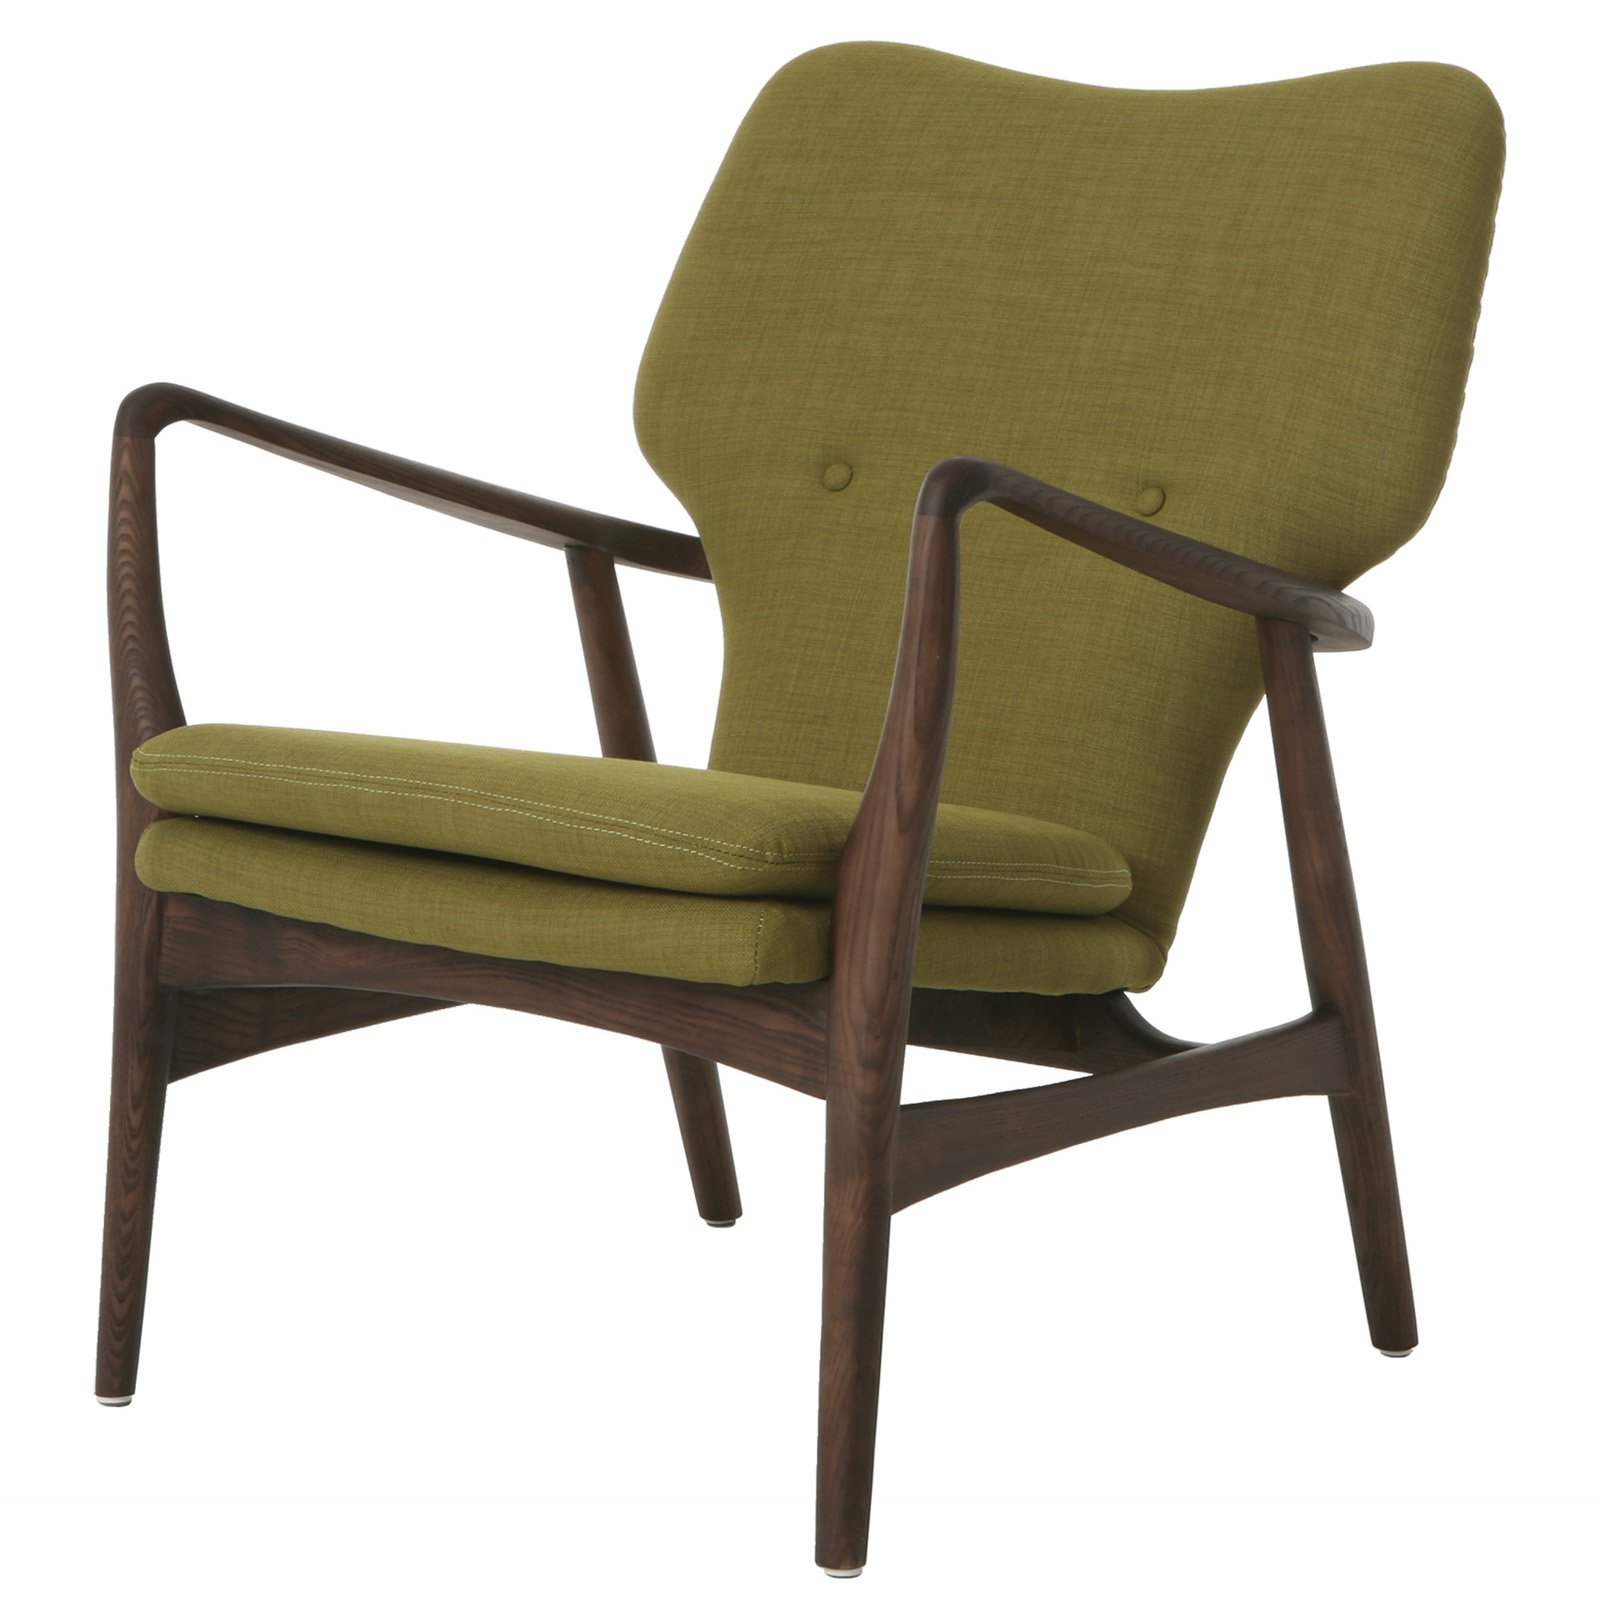 Pastel Furniture Elizabeth Upholstered Arm Chair